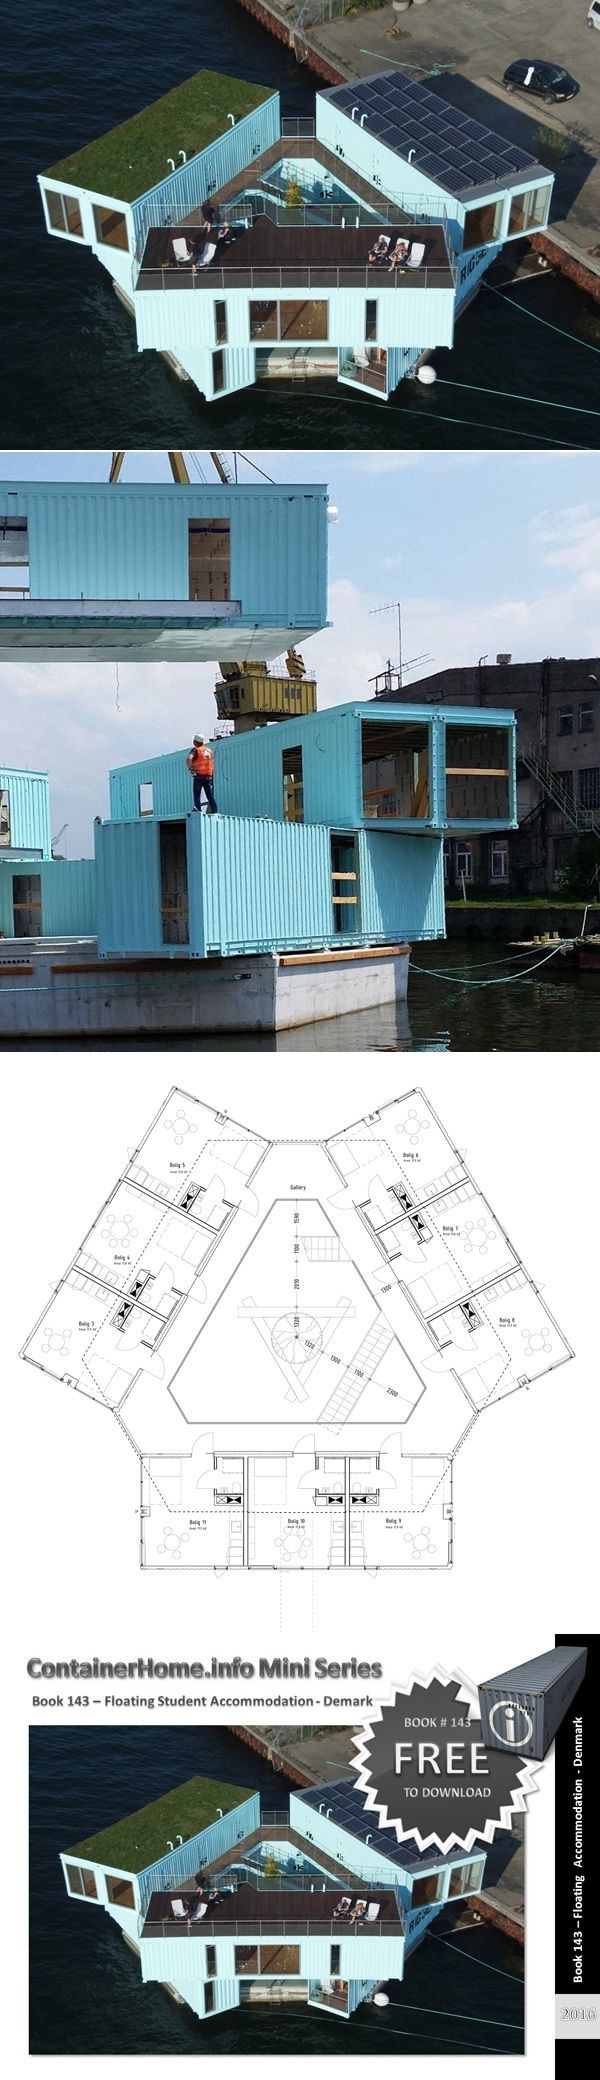 828 best Shipping container ideas images on Pinterest | Container ...